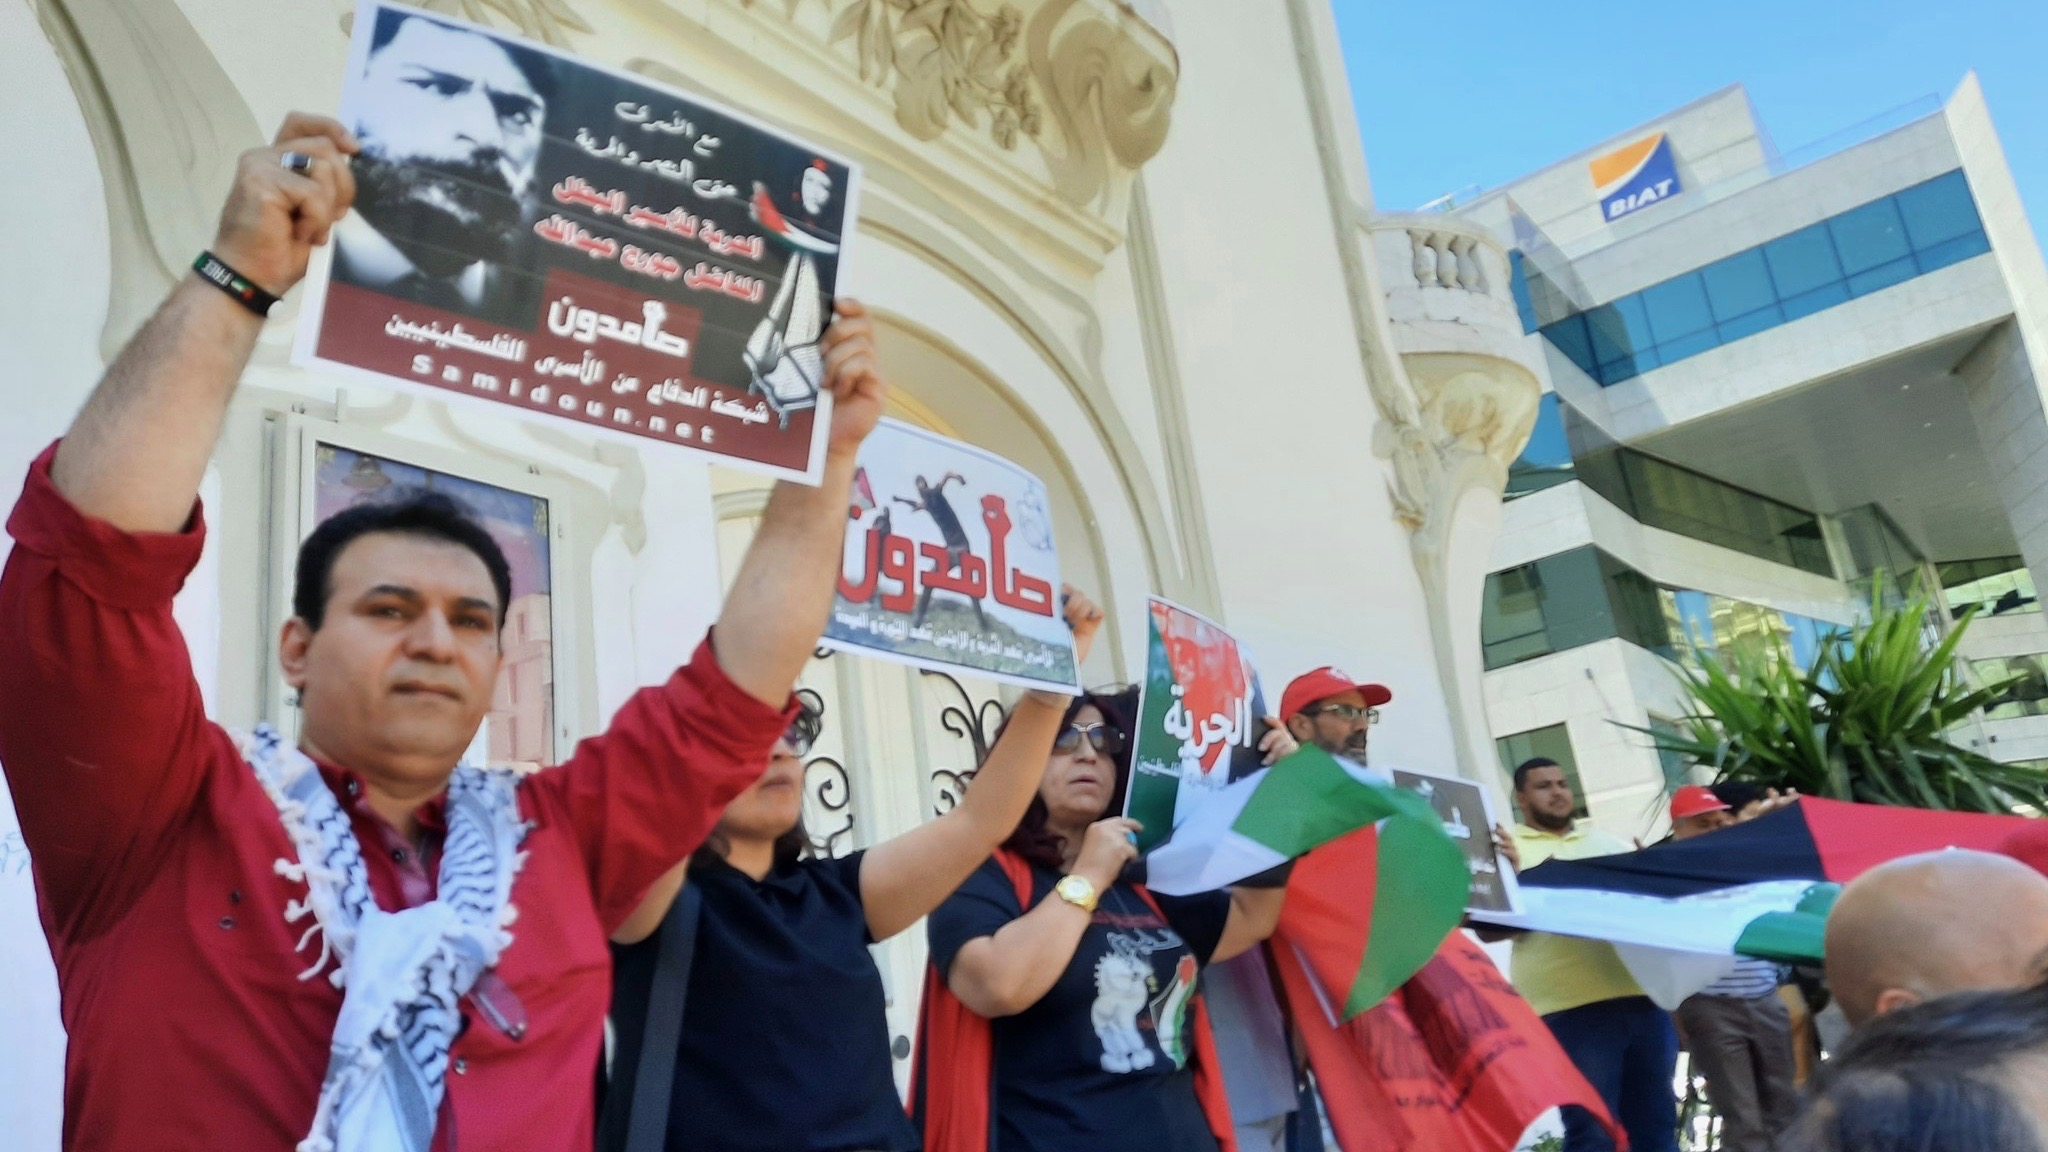 Release George Abdallah protests in Tunisia